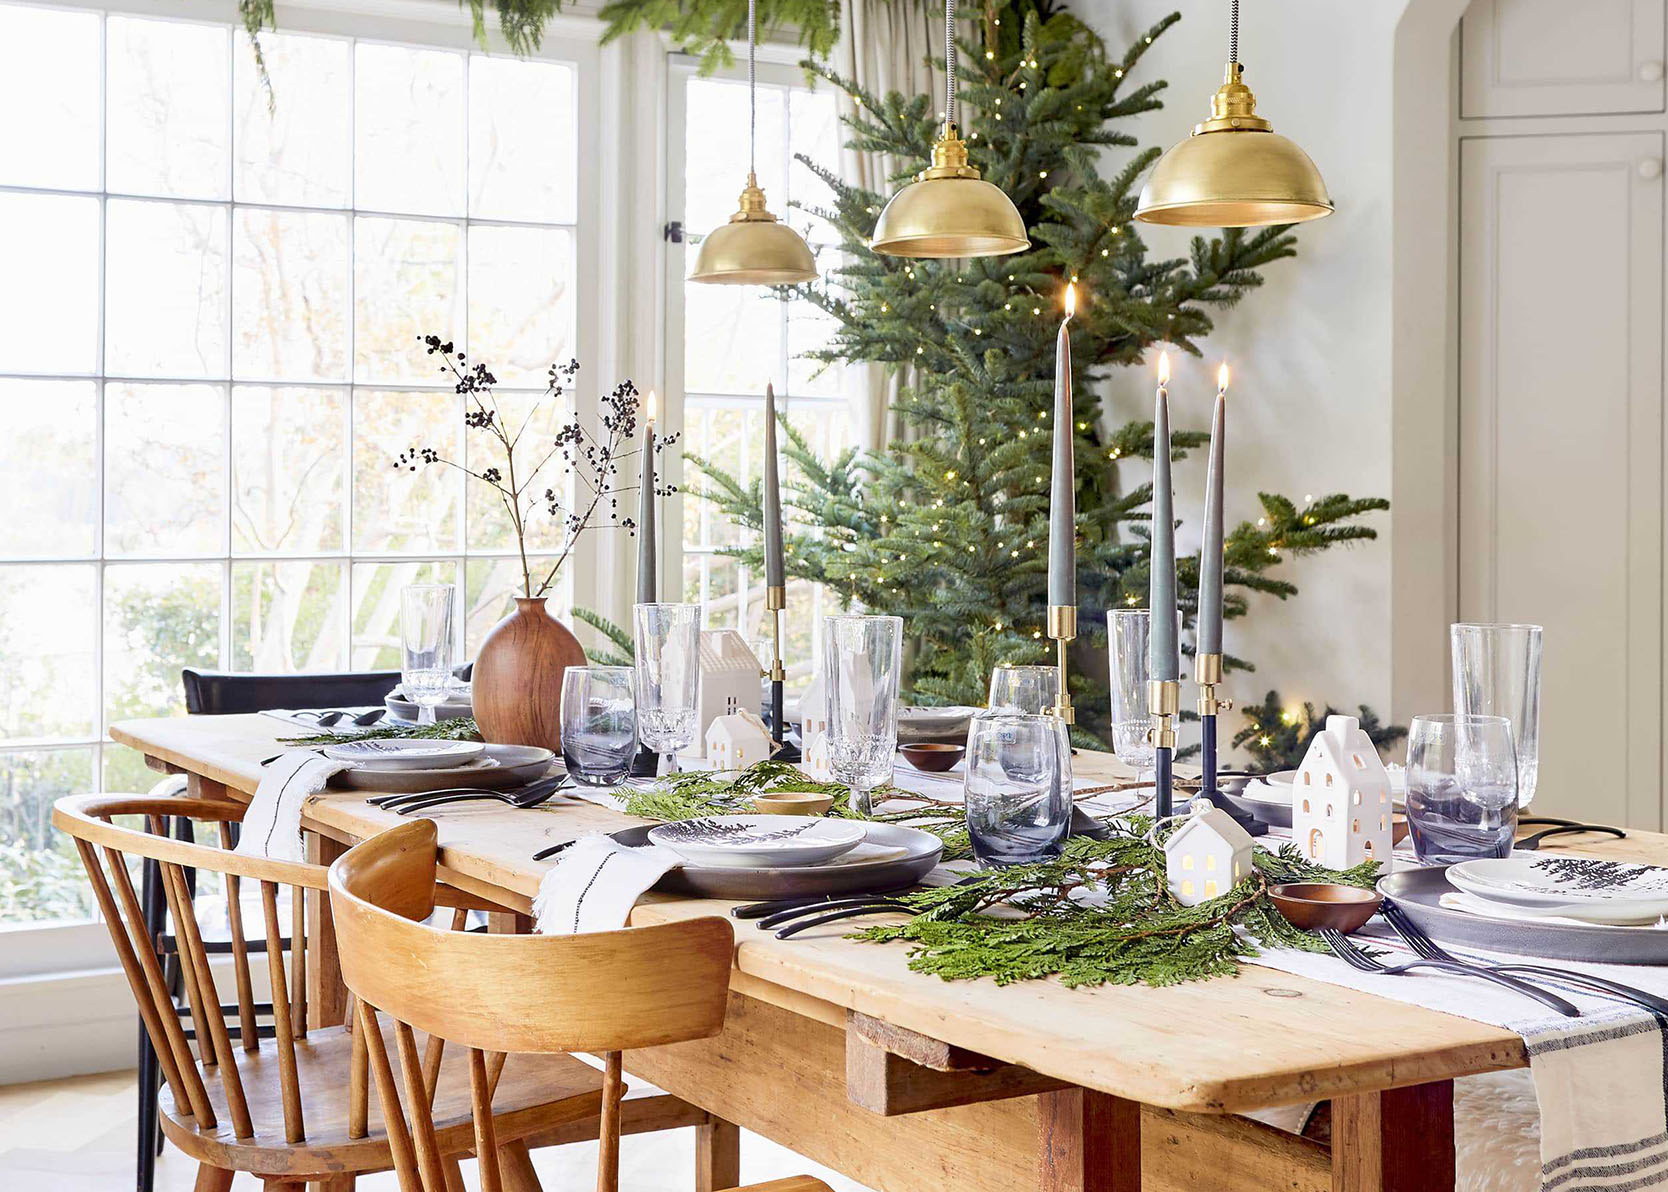 How To Brighten Up Your Holiday Dinner Table (Because A Small Gathering Still Deserves A Lot Of Cheer)